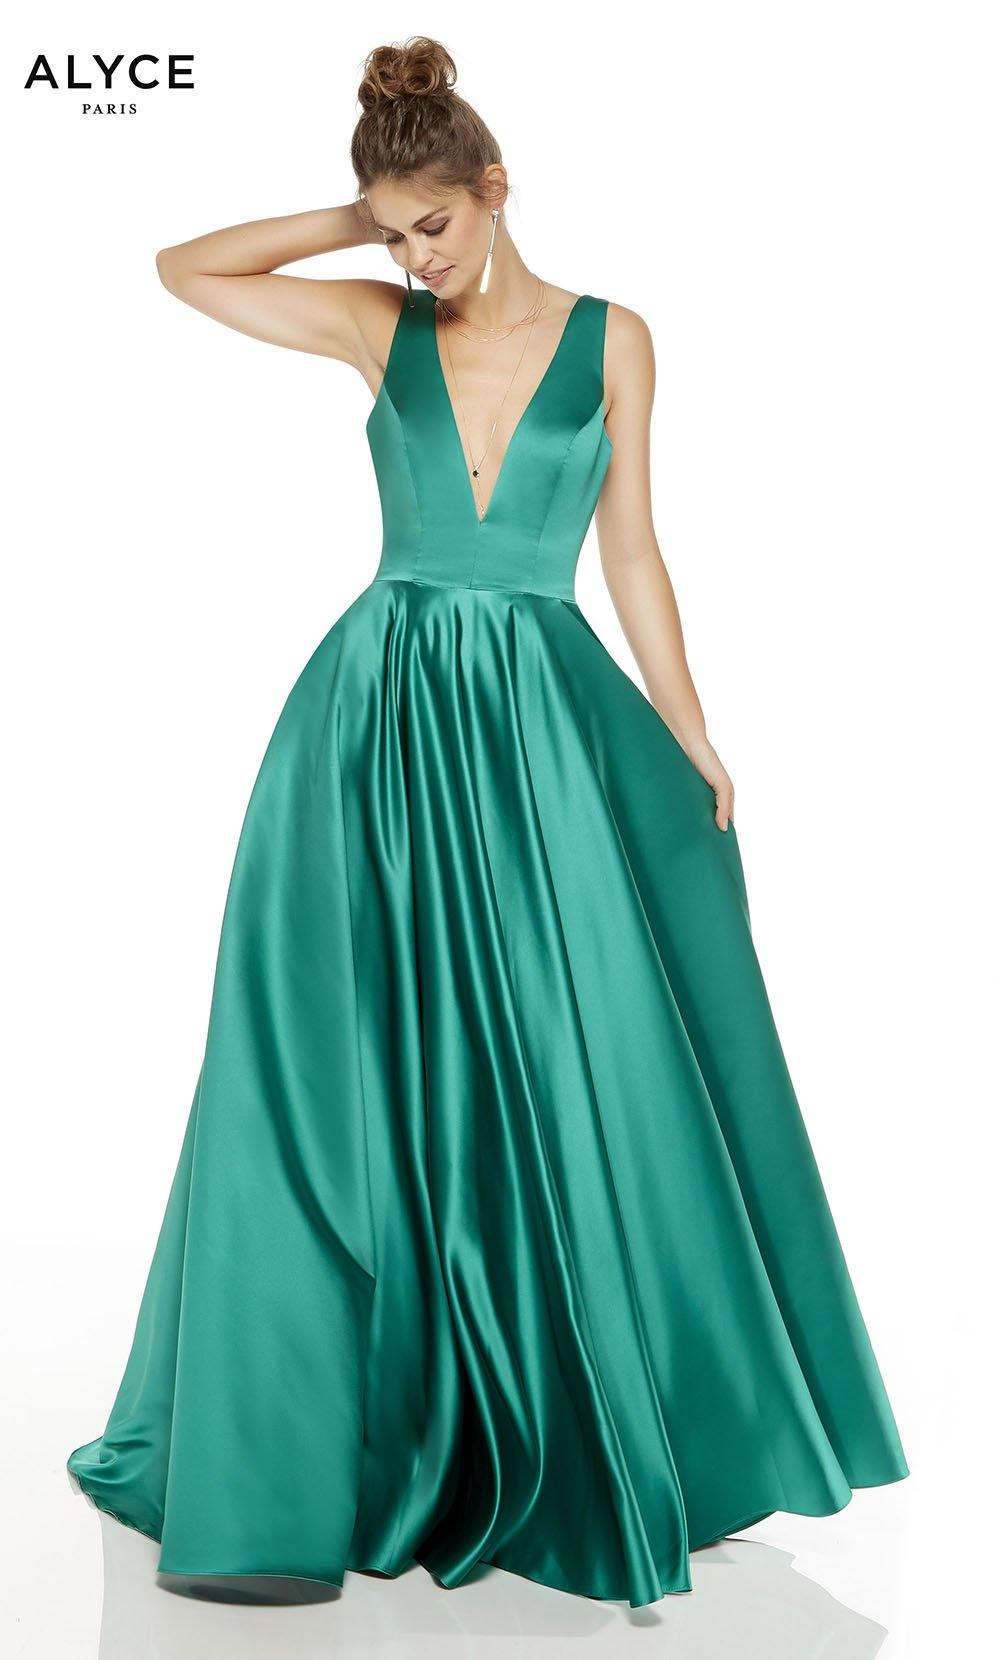 Emerald formal dress with a plunging neckline